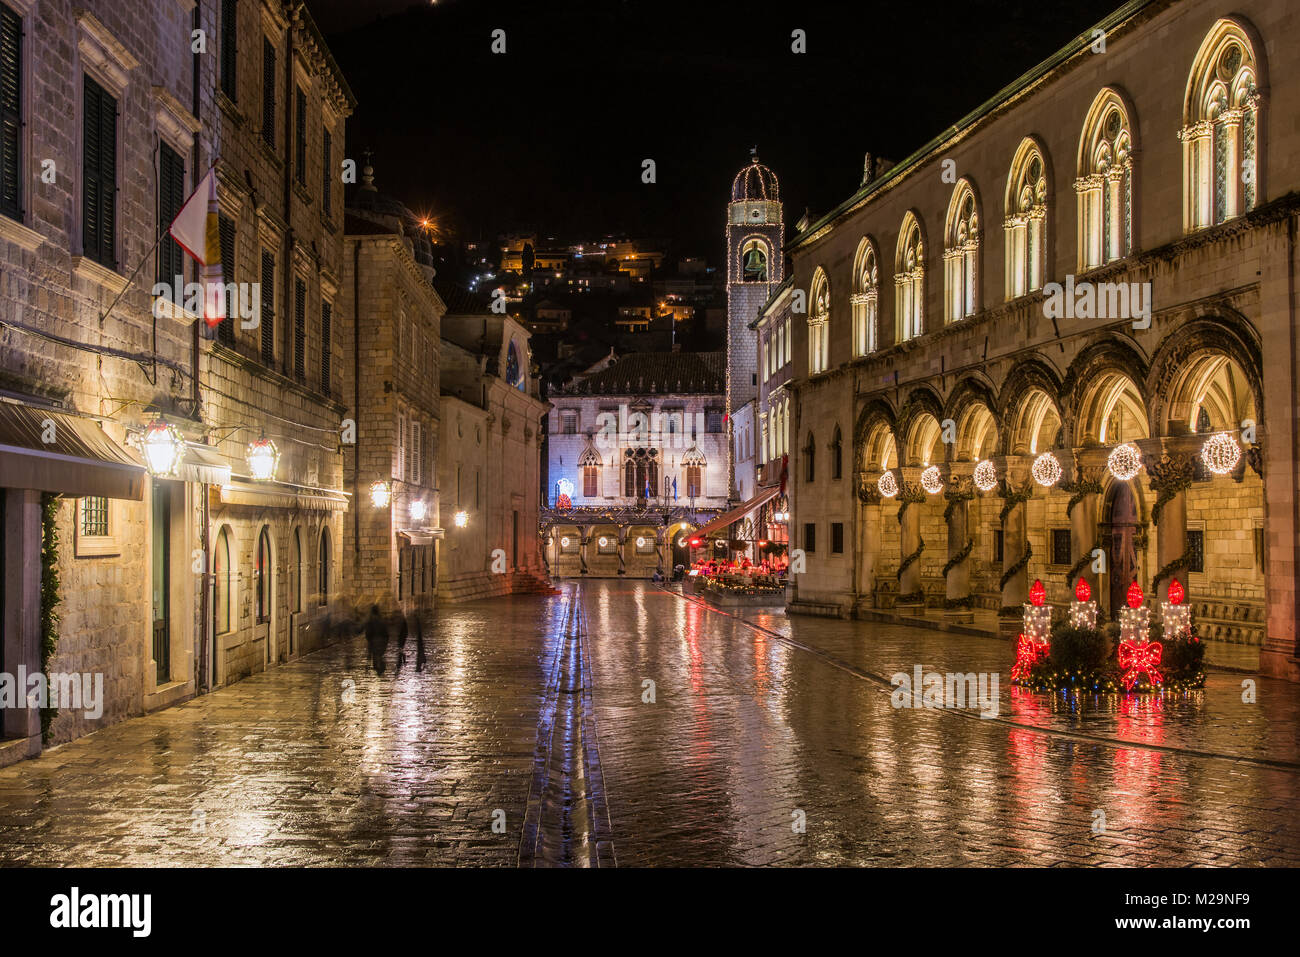 Night view of Rector's Palace adorned with Christmas lights and decorations and behind it the Sponza Palace, - Stock Image